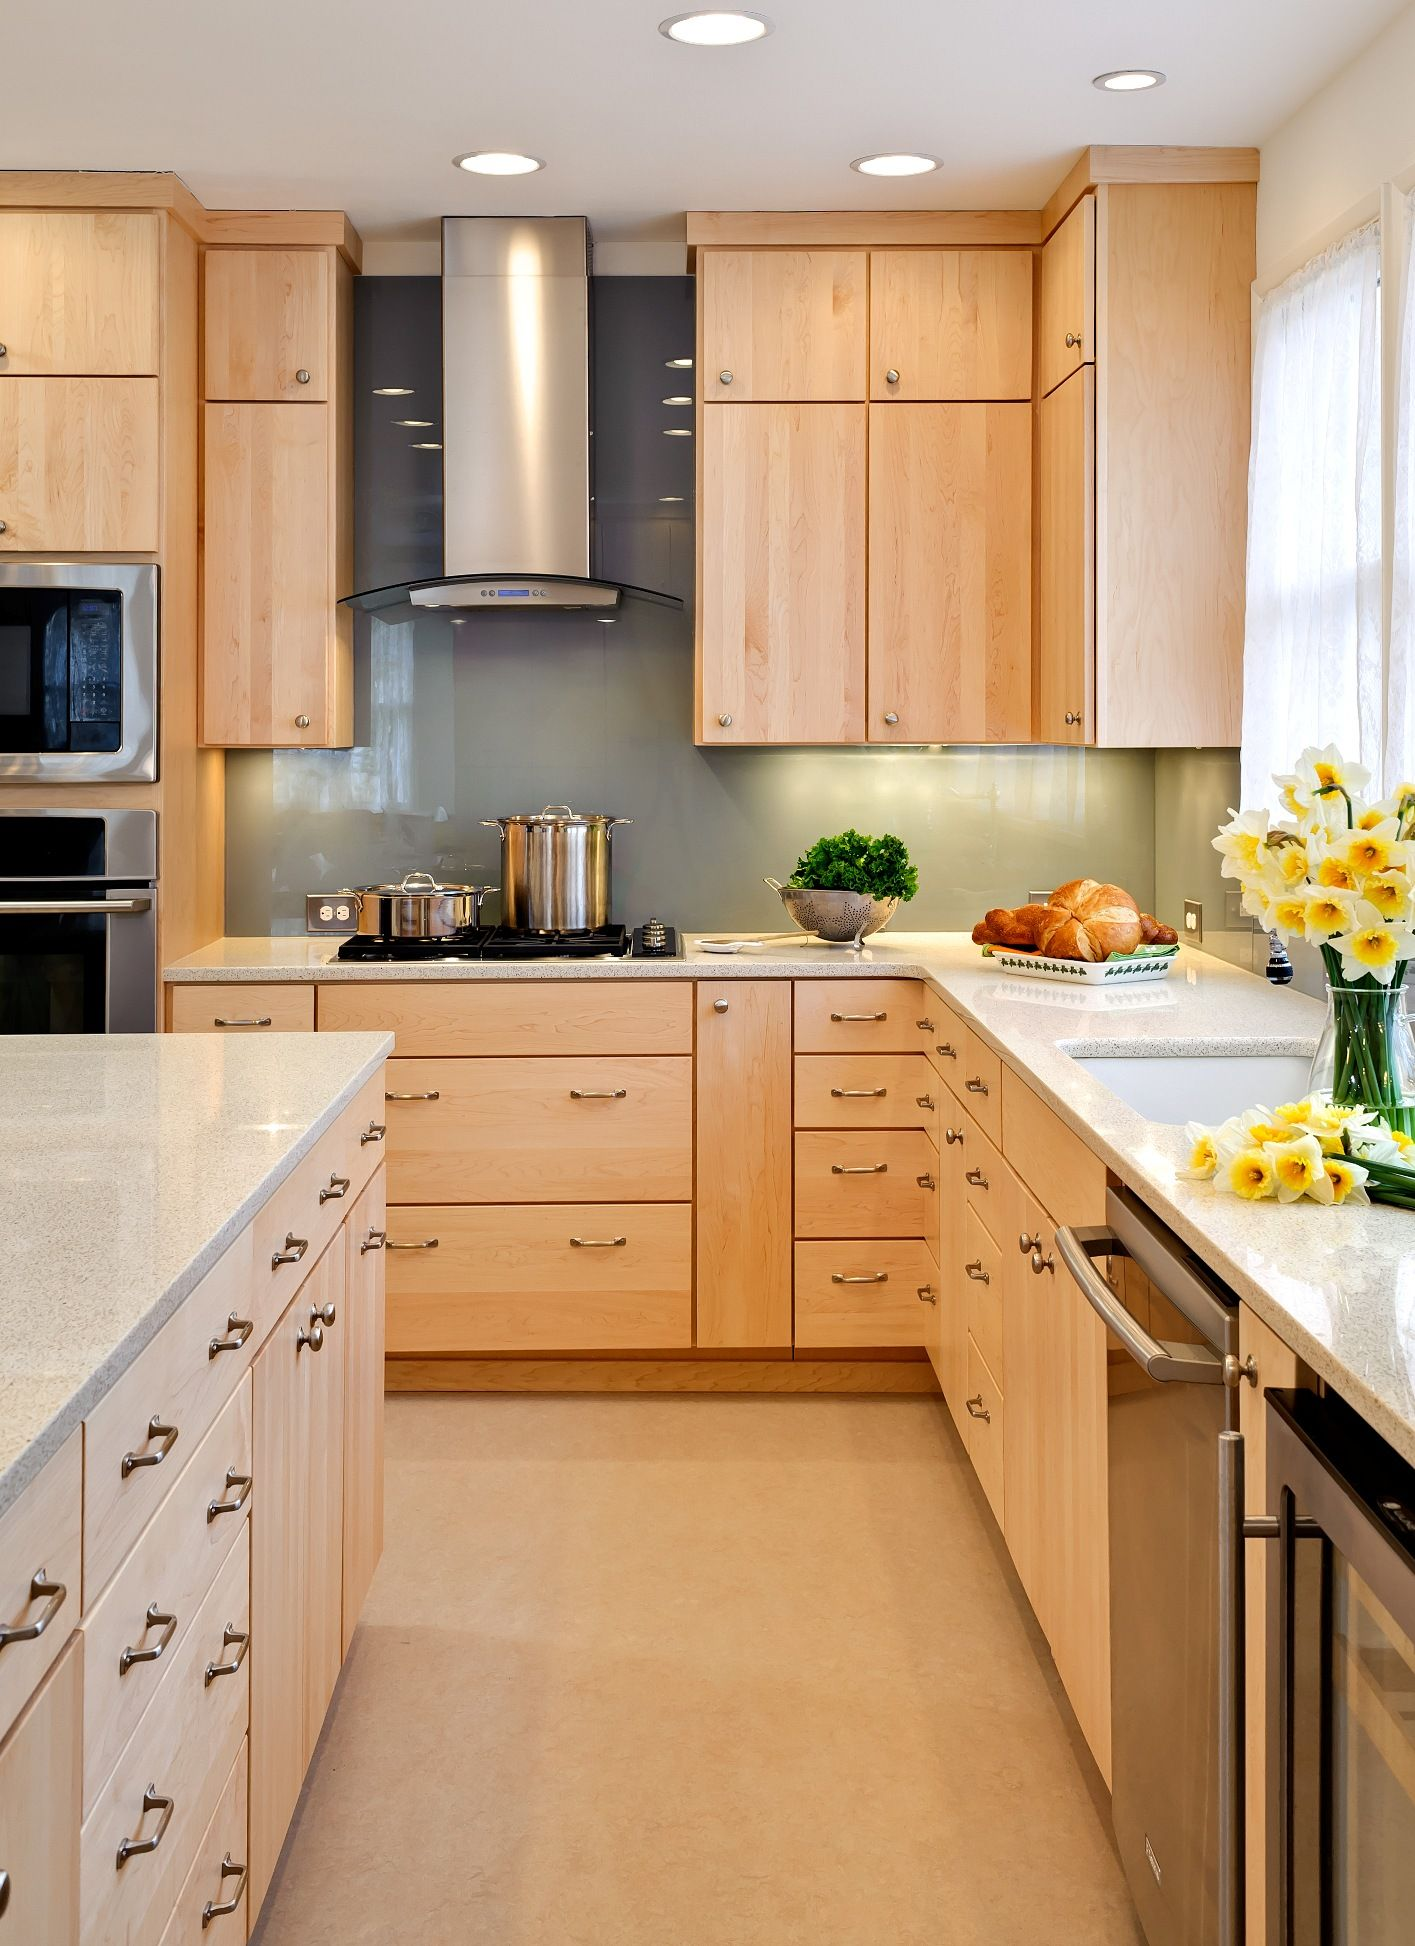 Pine Kitchen Cabinets For Furniture Traditional Kitchen With Pine Cabinets Also White Sink